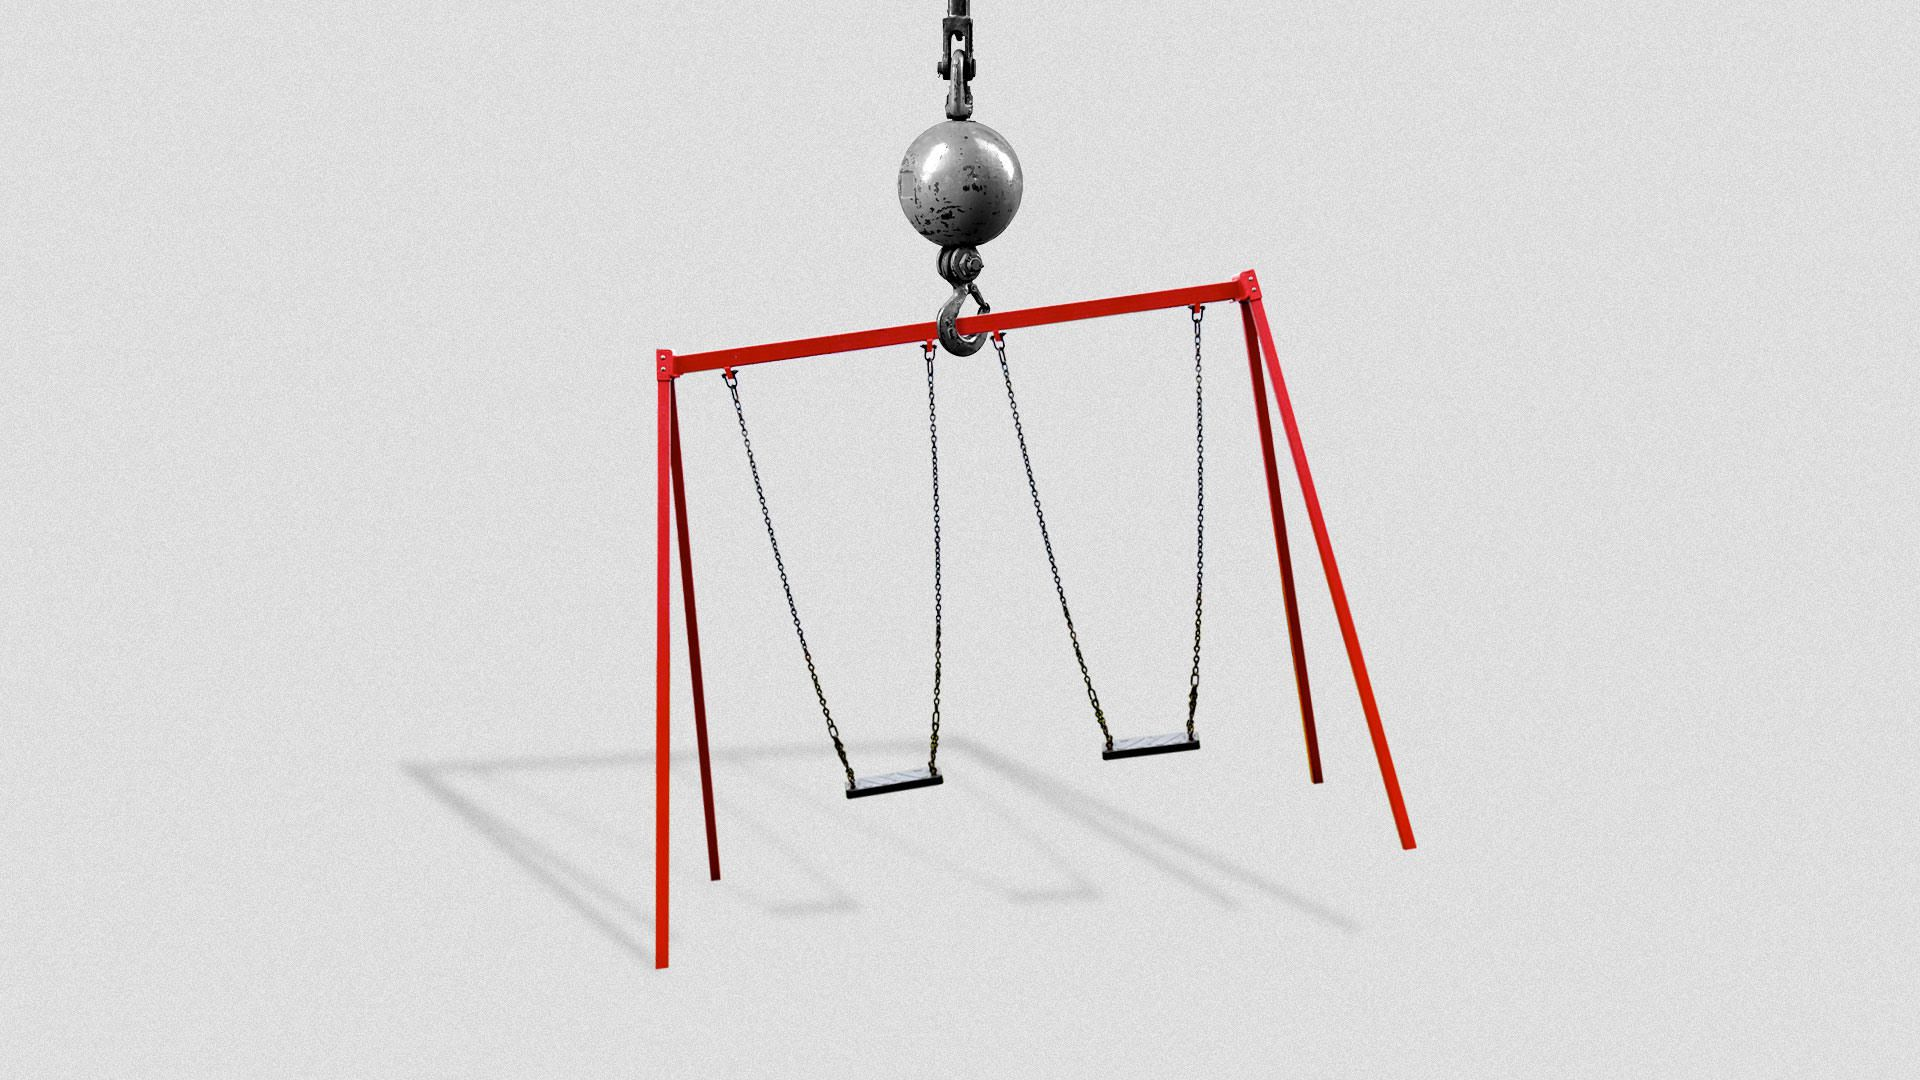 Building a new Playground Ventures, after Andy Rubin - Axios